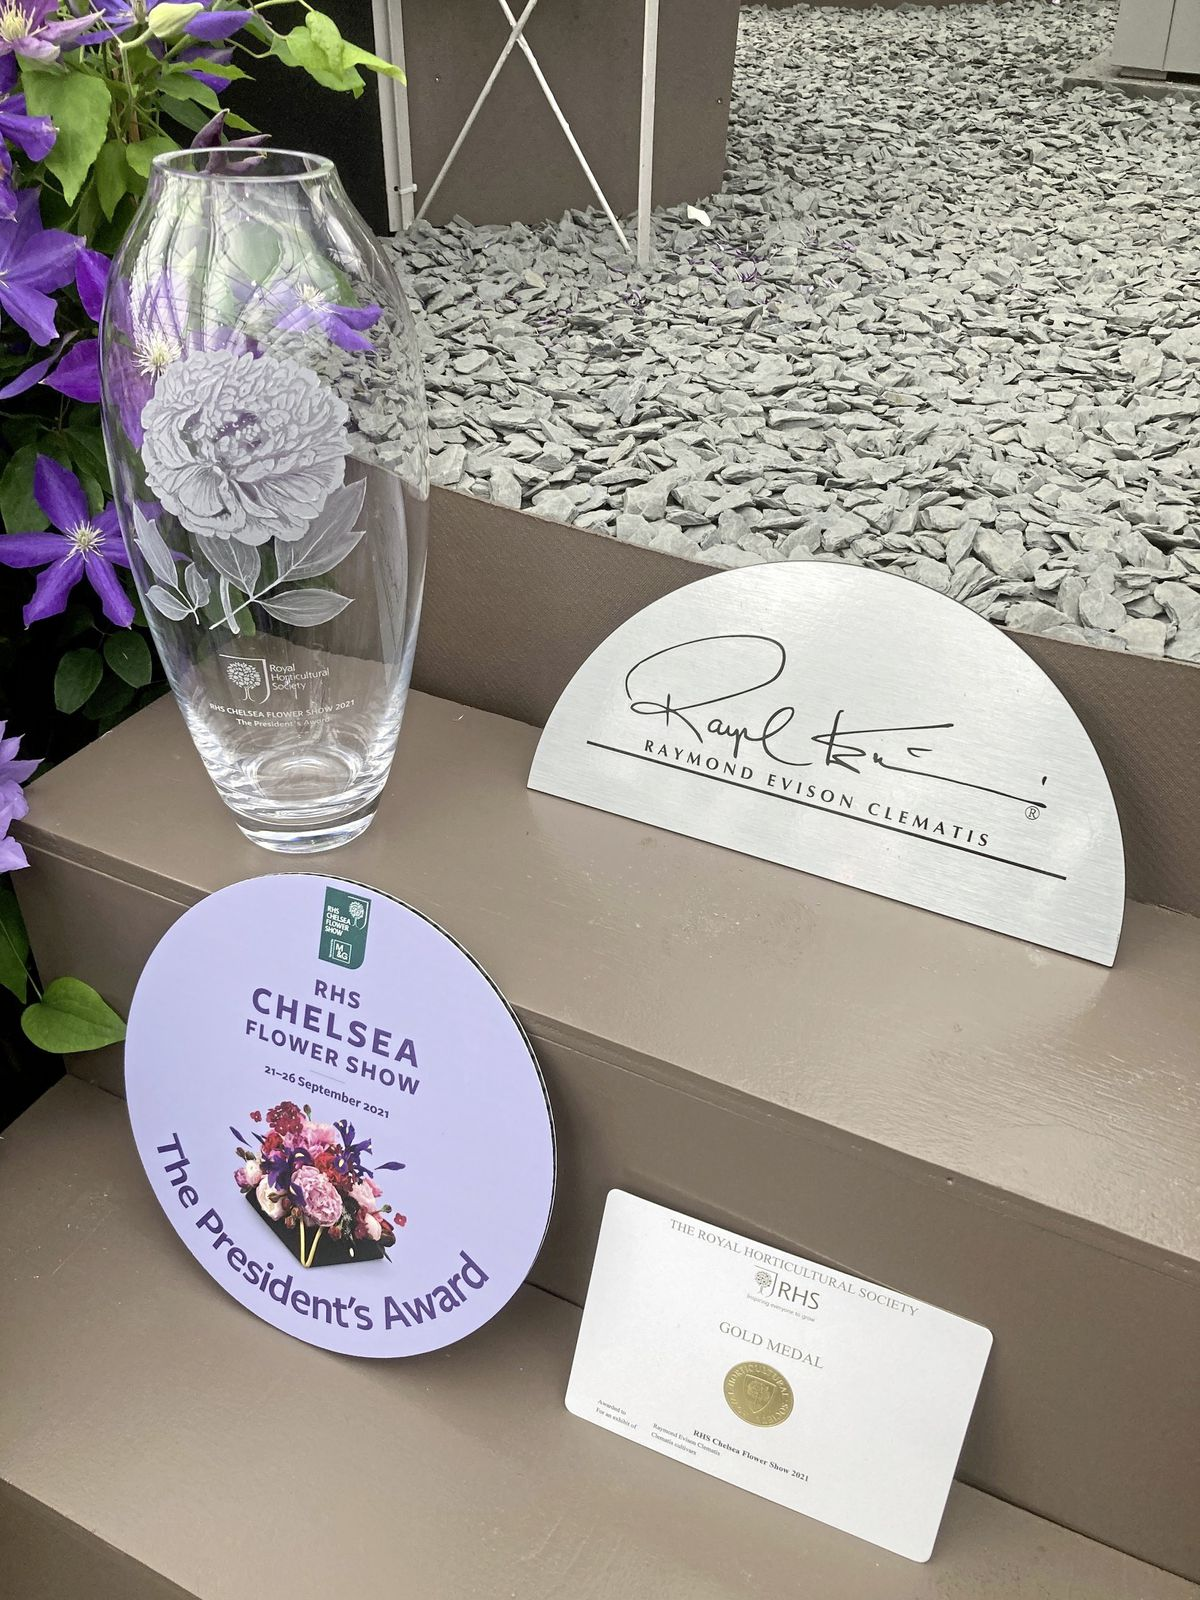 Guernsey's Raymond Evison Clematis has won the coveted President's Award for the most outstanding exhibition at the RHS Chelsea Flower Show. The team also claimed a gold medal, the 31st for Mr Evison. (30008515)